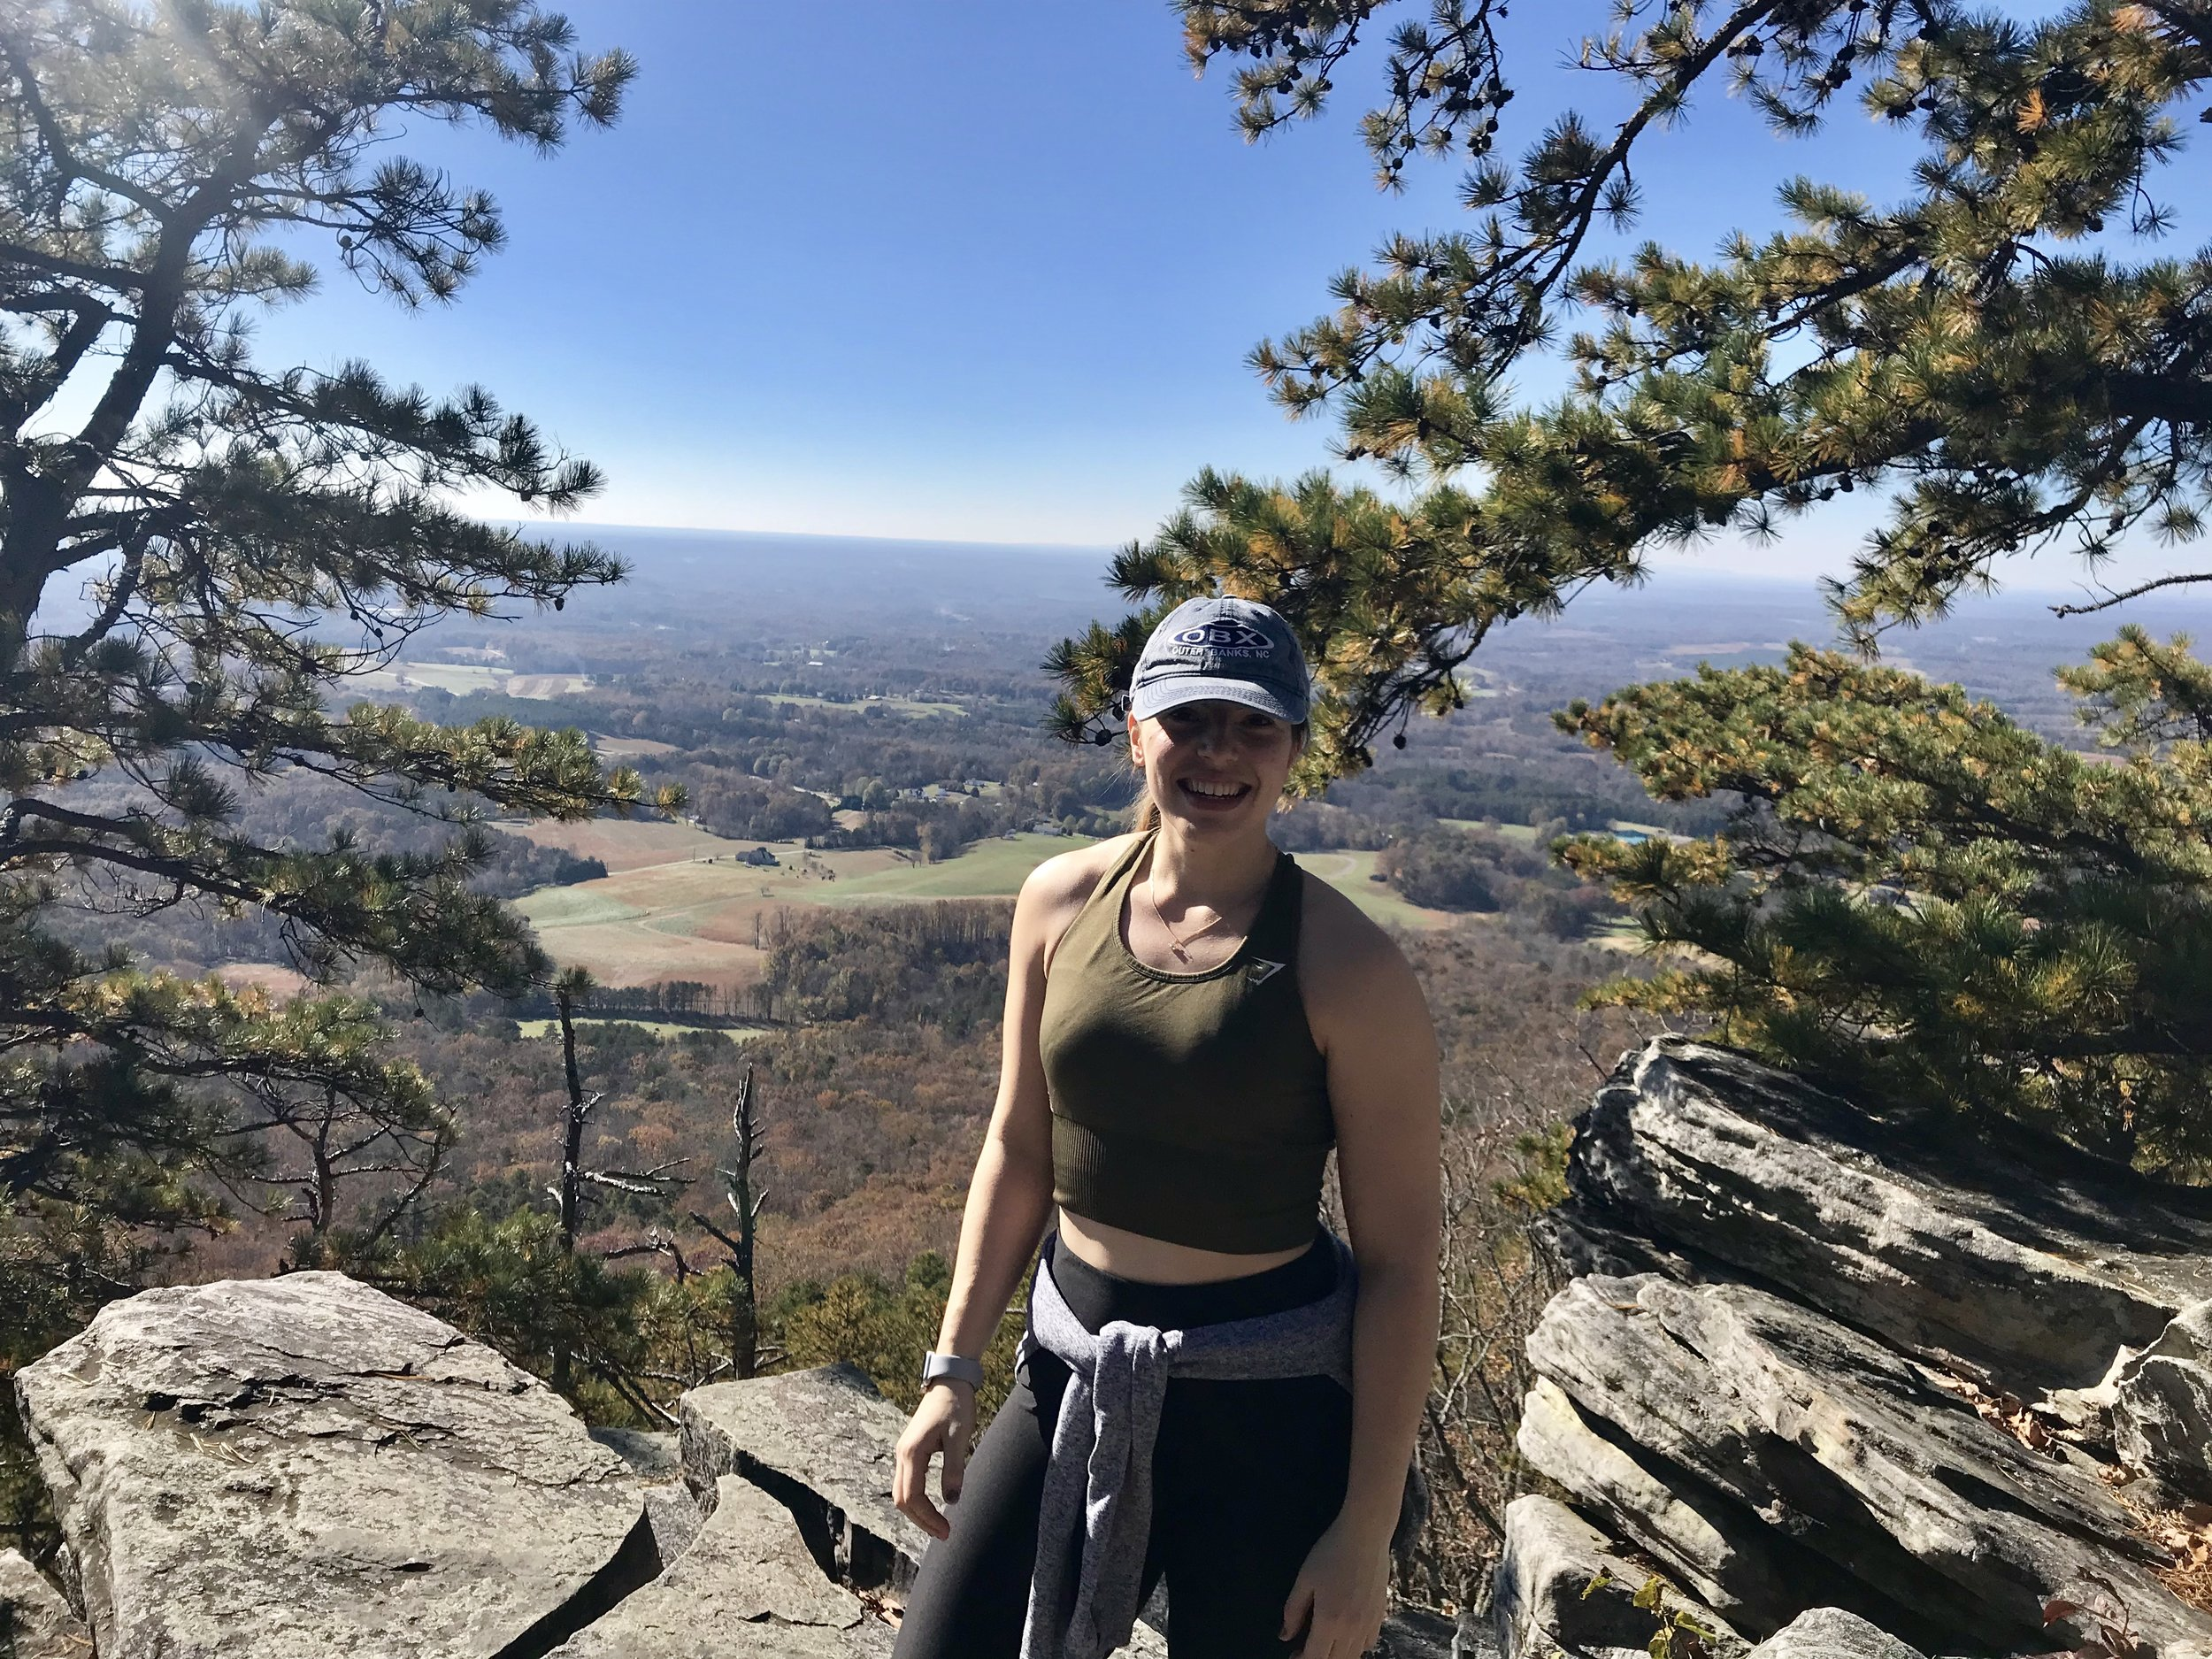 A hike to Pilot Mountain, NC in October 2018.